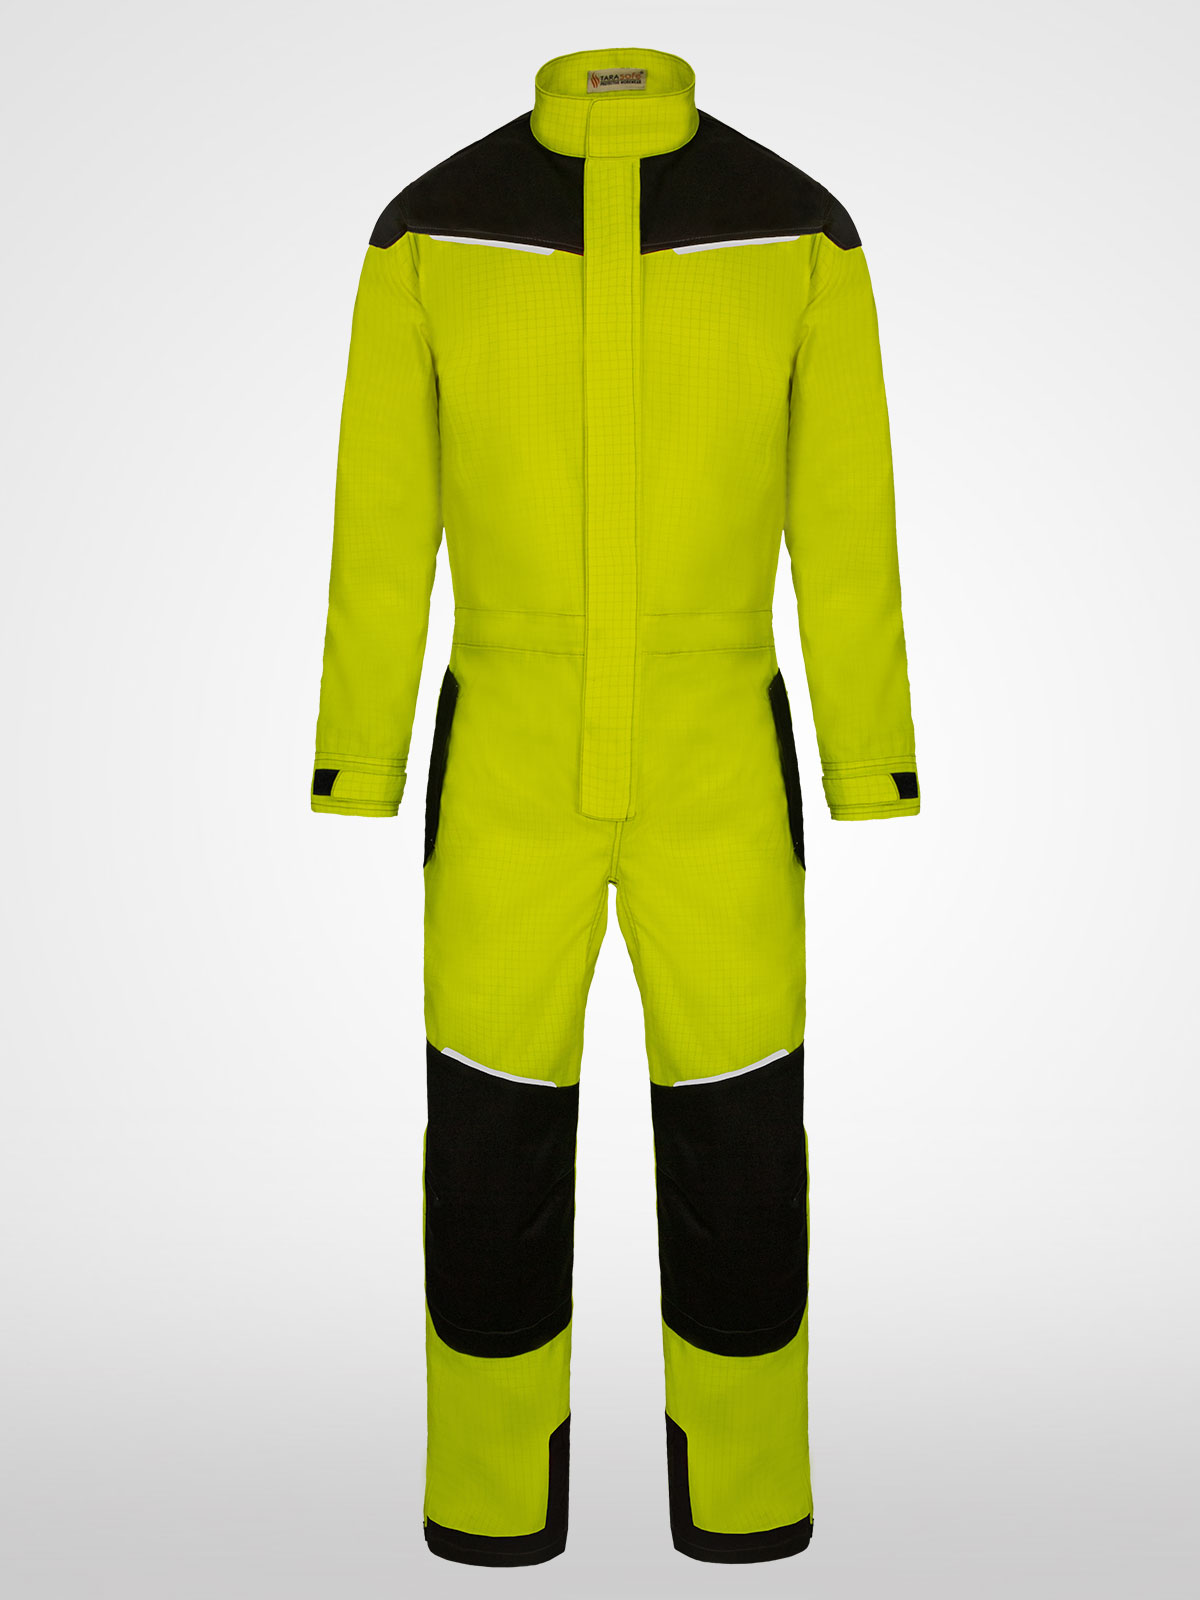 65c46b080e9f FR Coveralls - Manufacturer   Supplier of Flame Resistant Coveralls ...